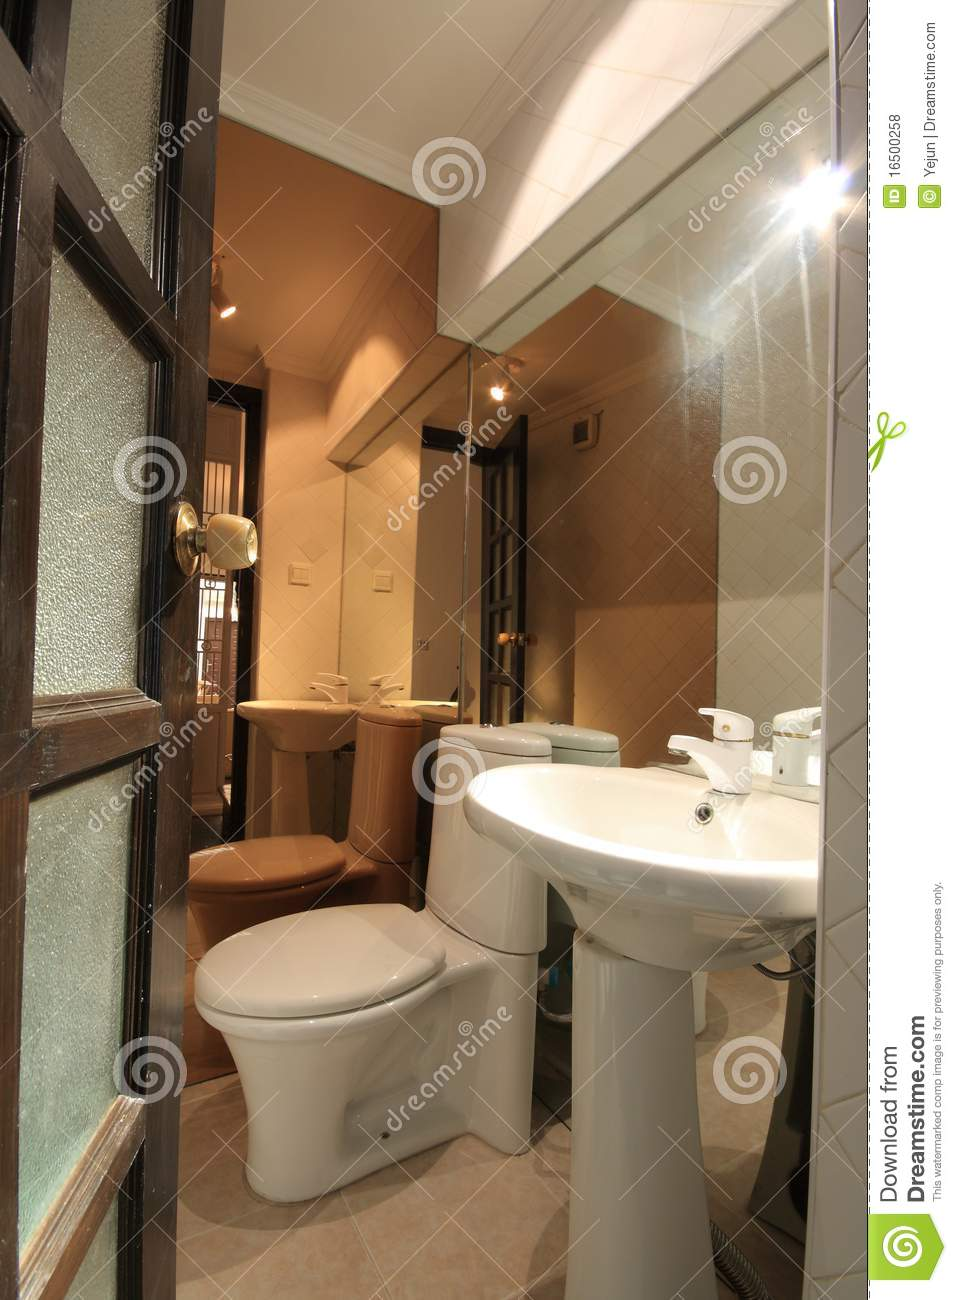 bathroom royalty free stock photos image 16500258